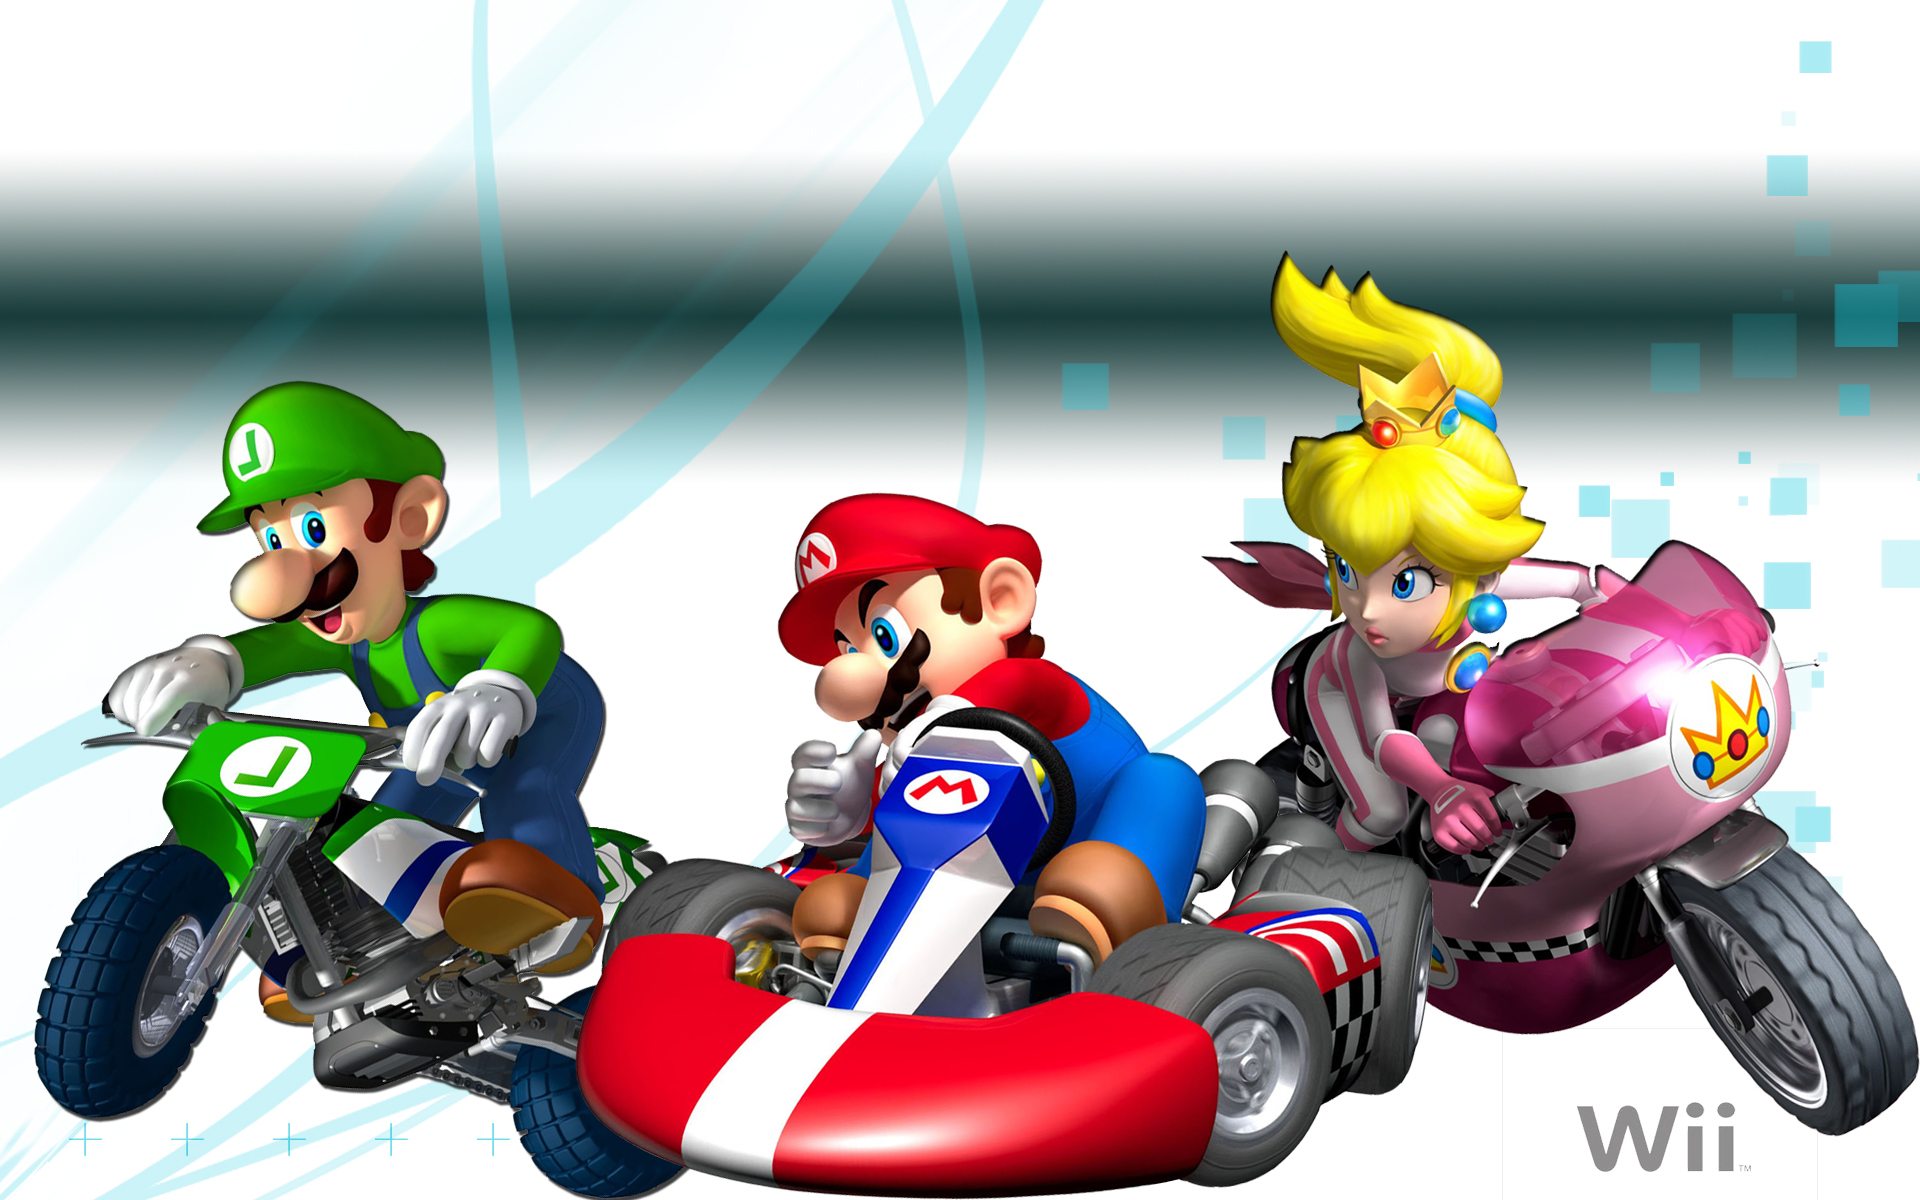 Mario Kart 8 Background: Mario Kart 8 Wallpaper A4 - HD Desktop Wallpapers